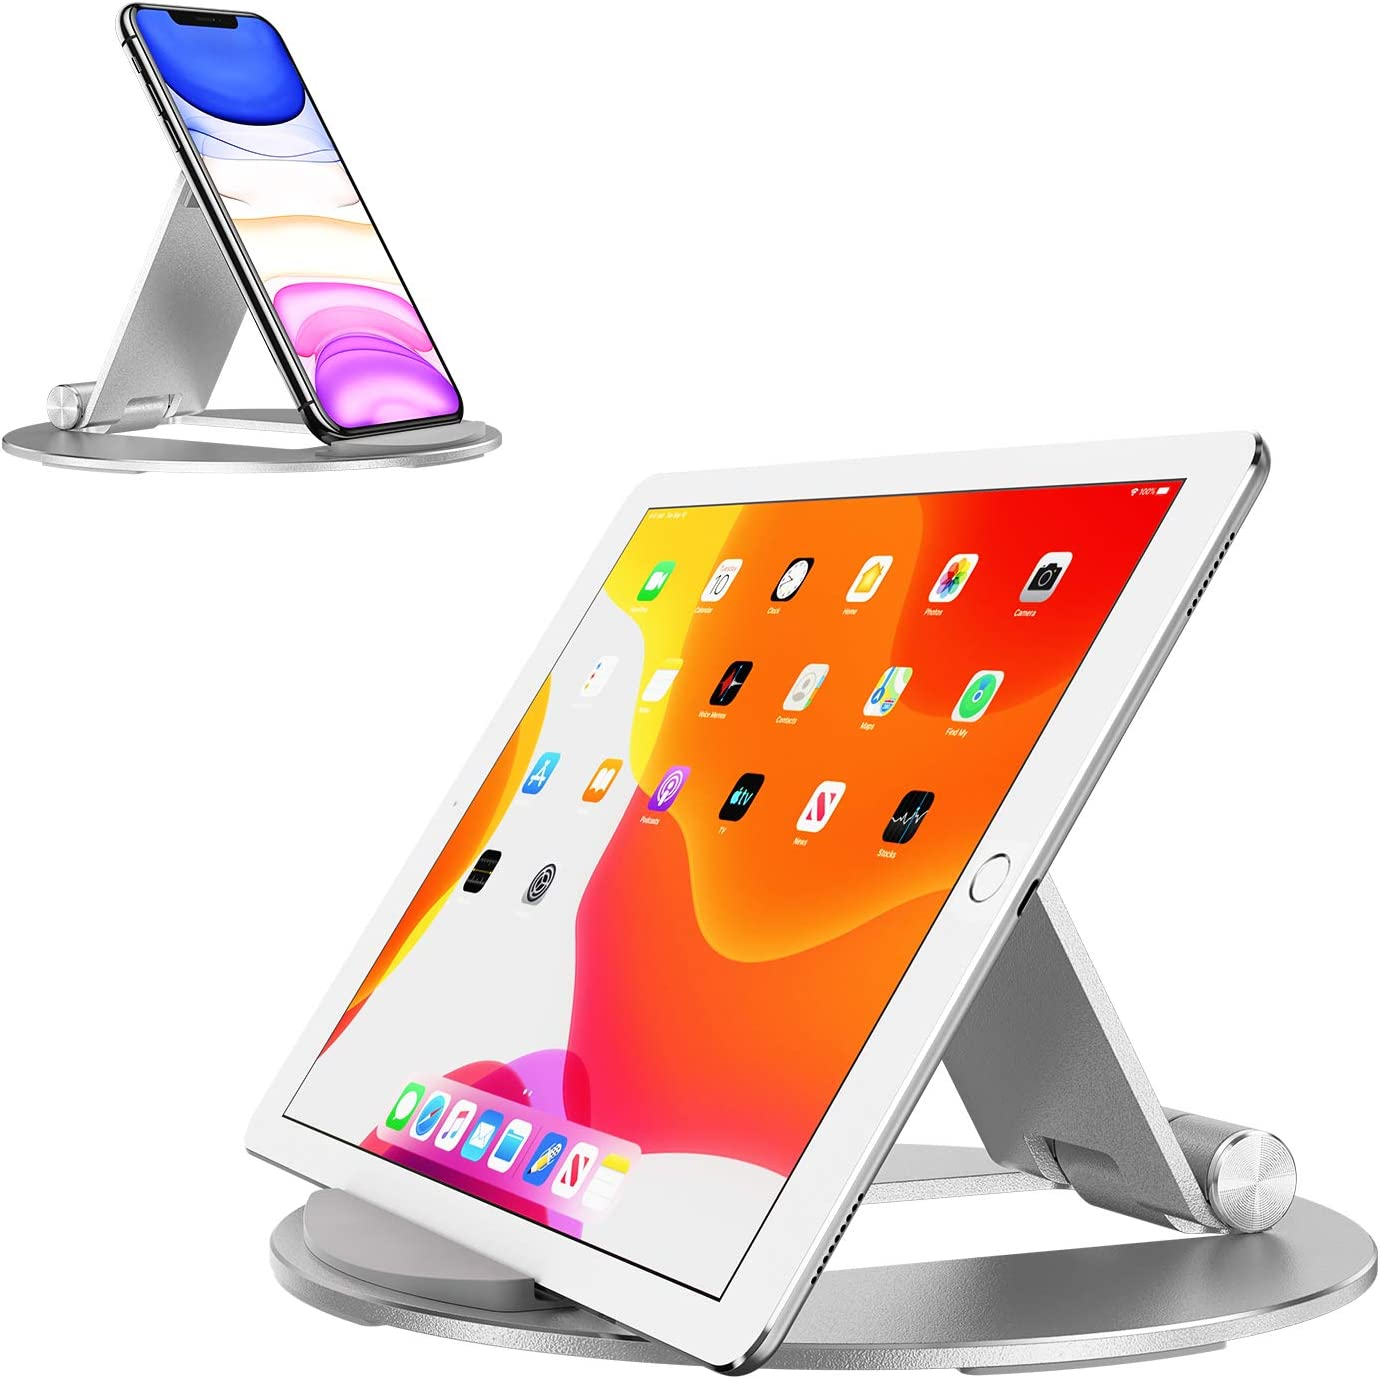 Tablet Stand Adjustable, OMOTON Desktop Aluminum iPad Stand with Anti-Slip Base, Portable Holder Dock for iPad 10.2/9.7, New iPad Pro 11 2020, iPad Air, Samsung Tab, E-Reader and Cellphones, Silver